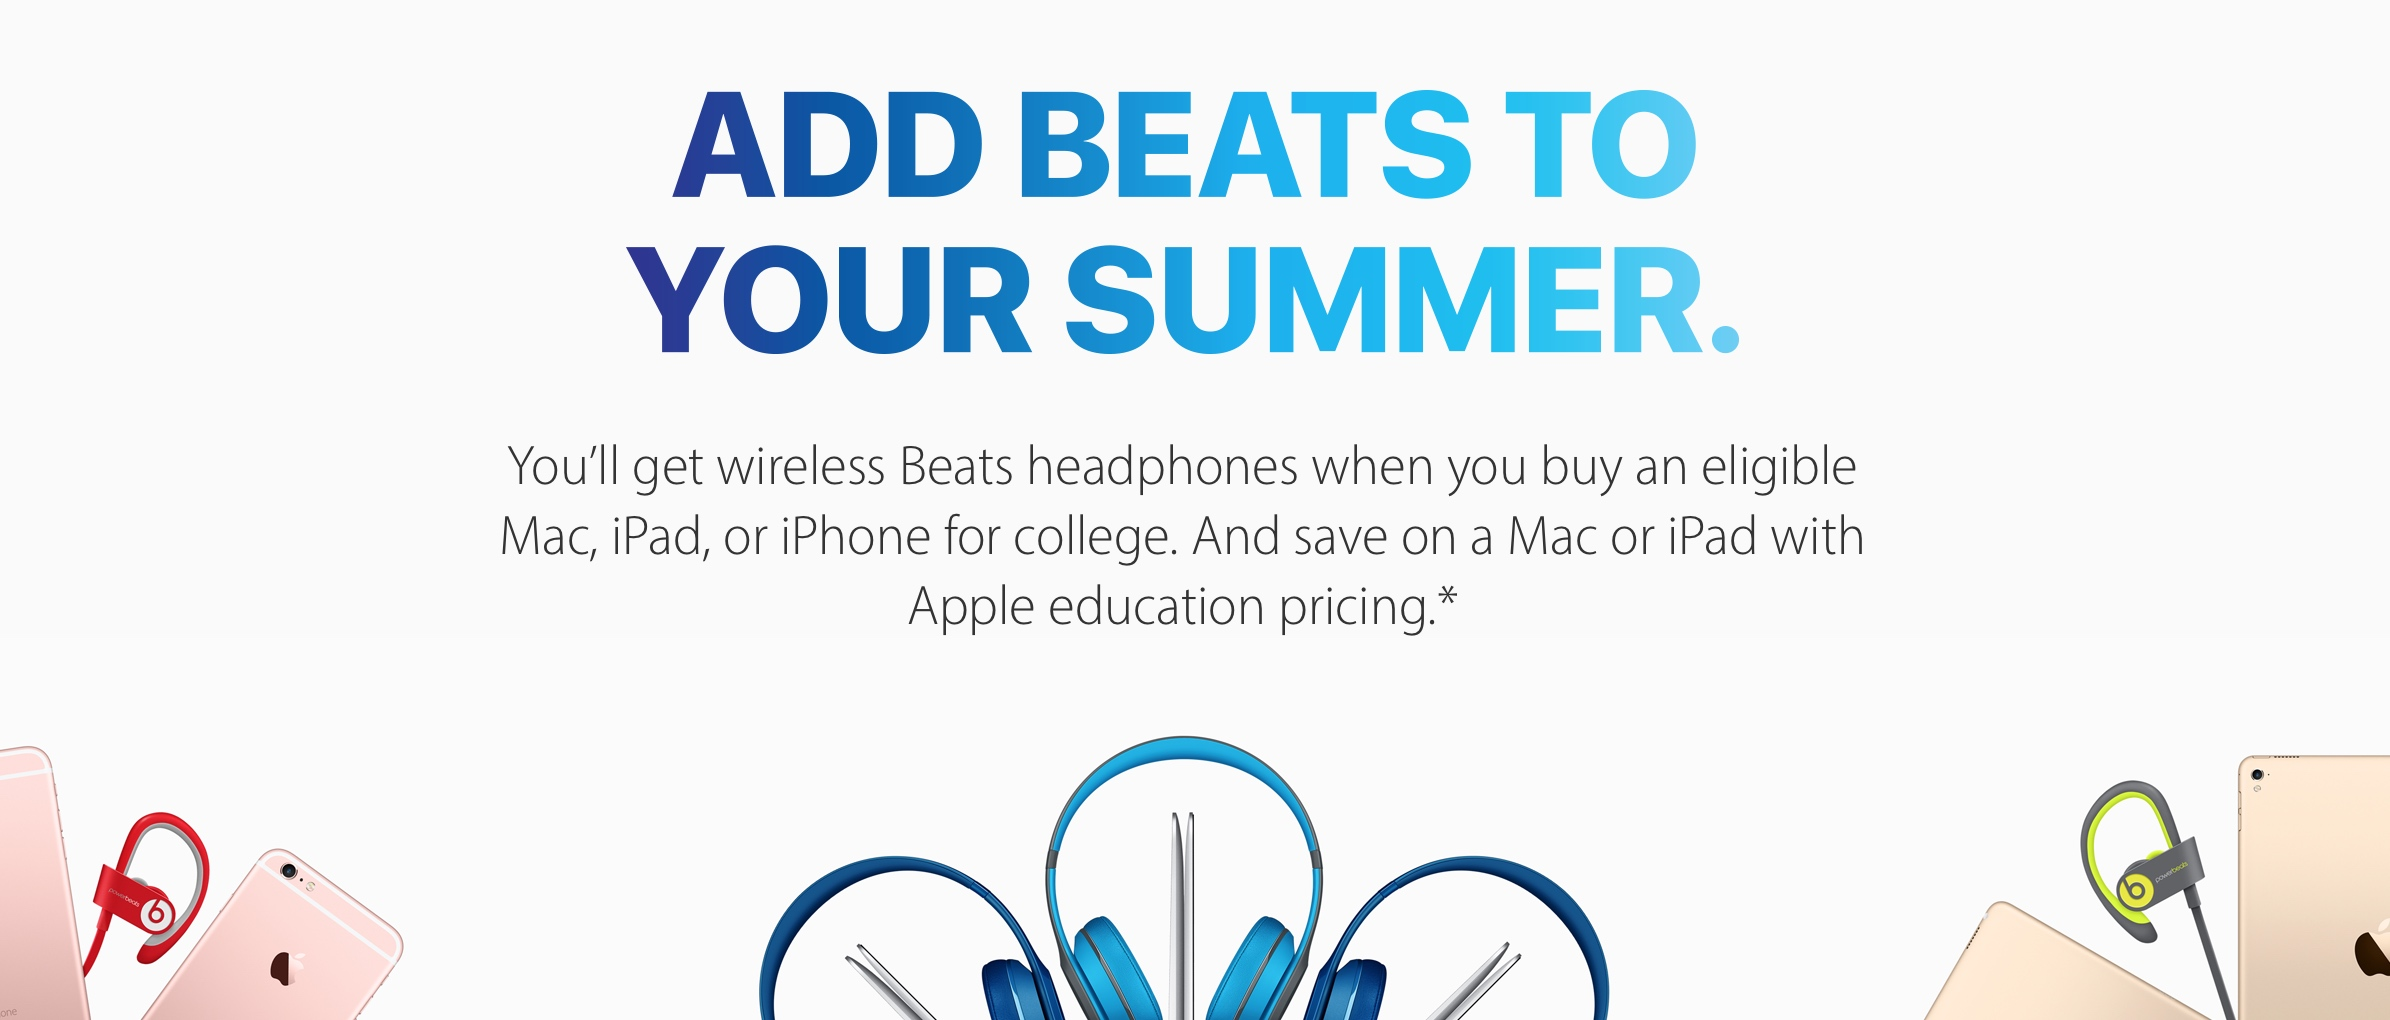 Apple launches 2016 Back to School deal: free Beats headphones with